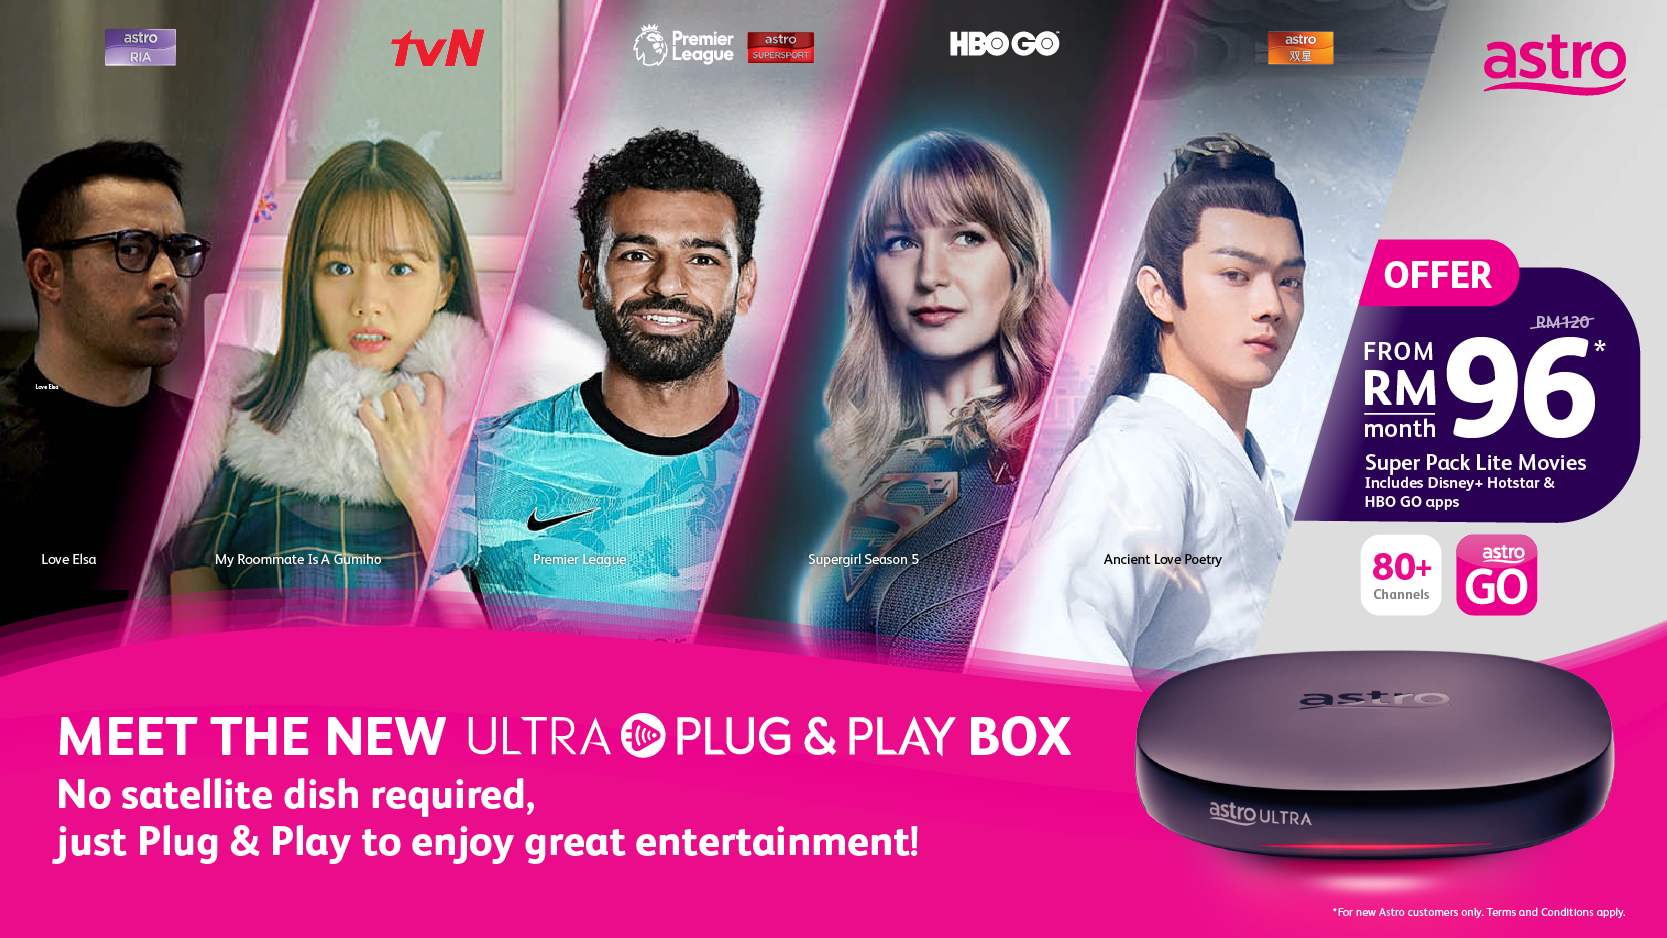 Welcome to the New Ultra Box